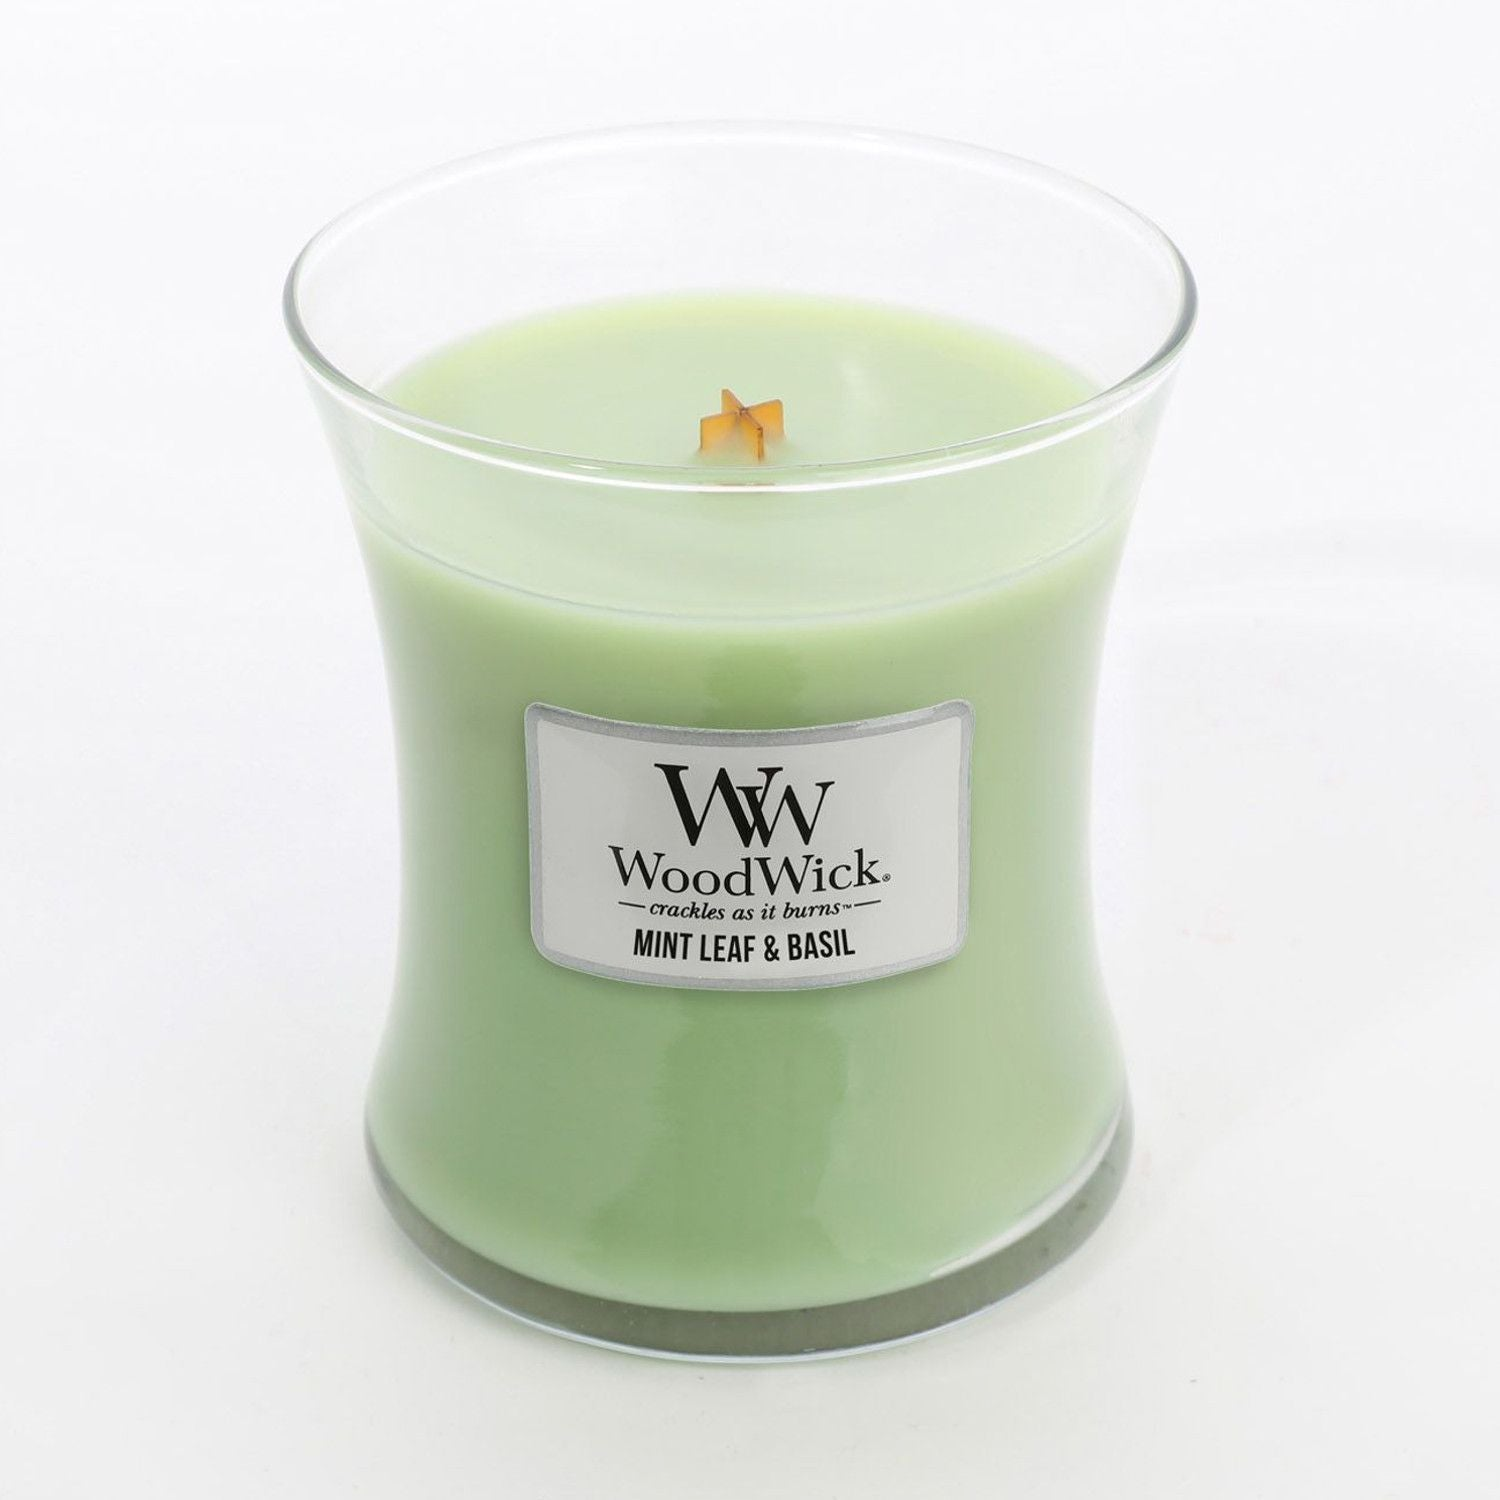 Medium Mint & Basil Scented WoodWick Soy Candle